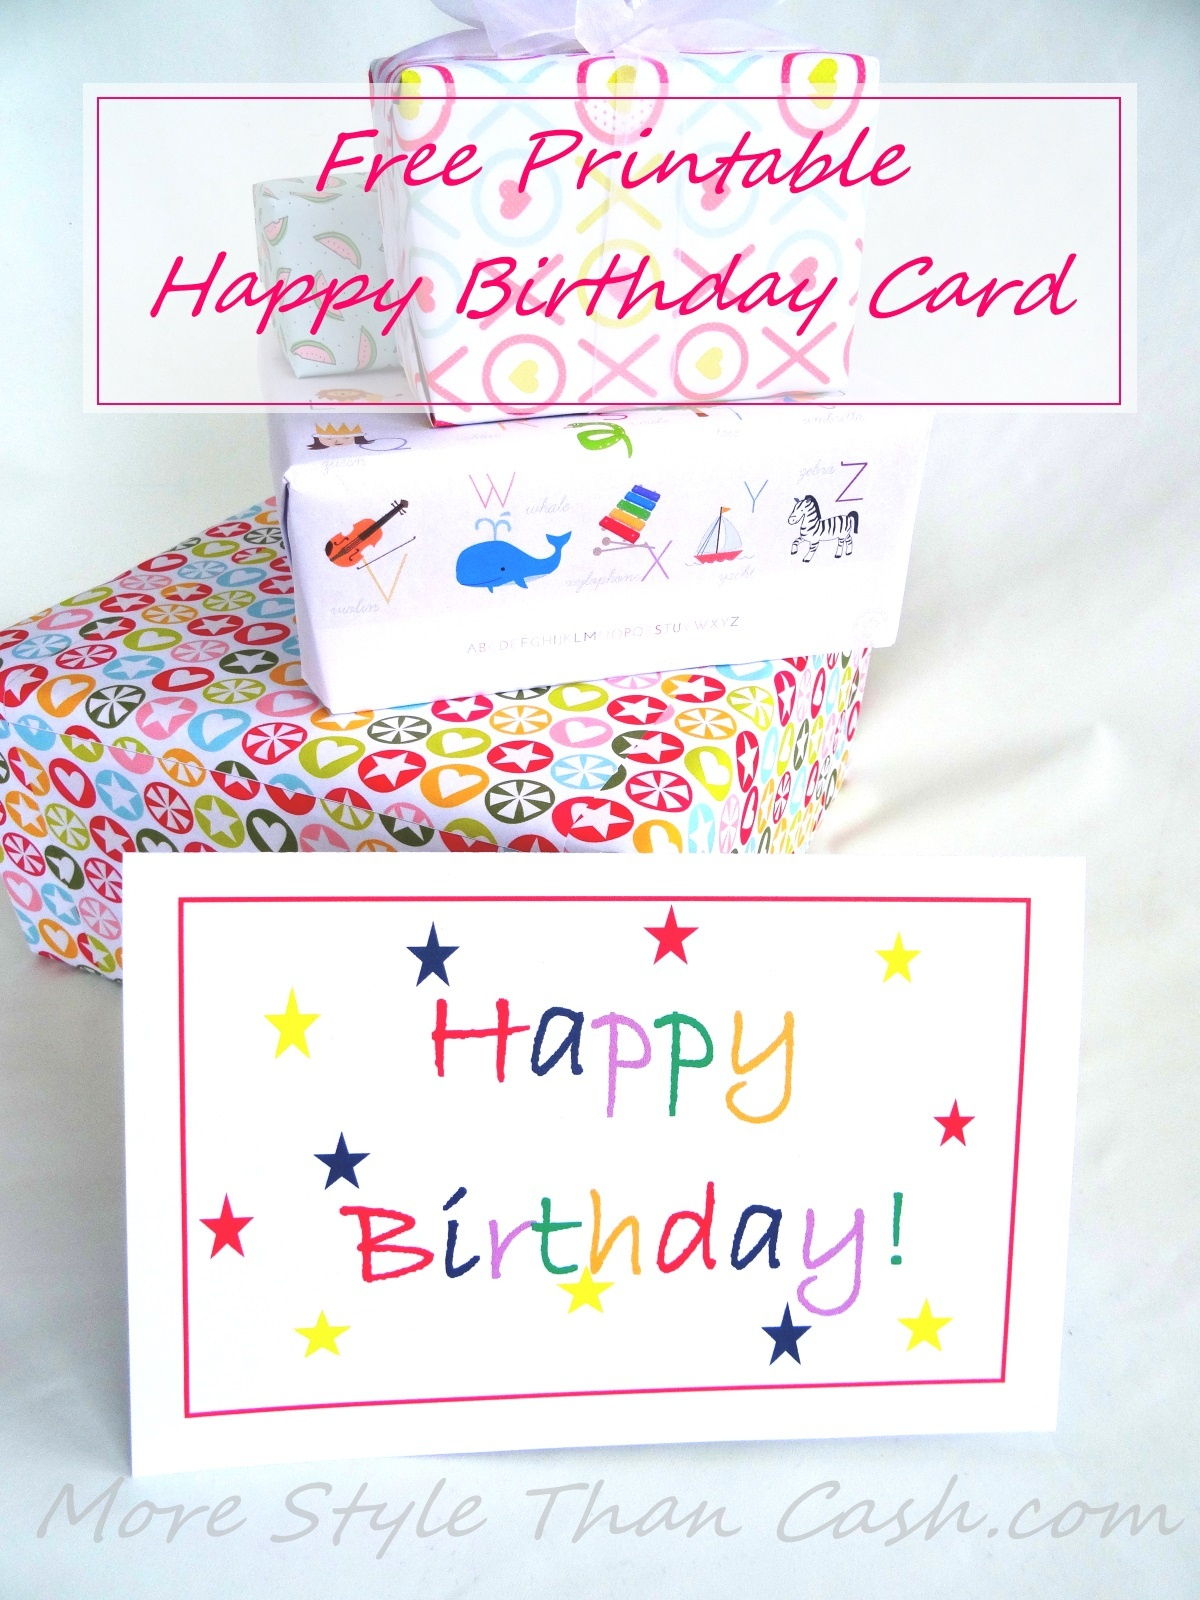 Free Printable Birthday Card - Free Printable Money Cards For Birthdays